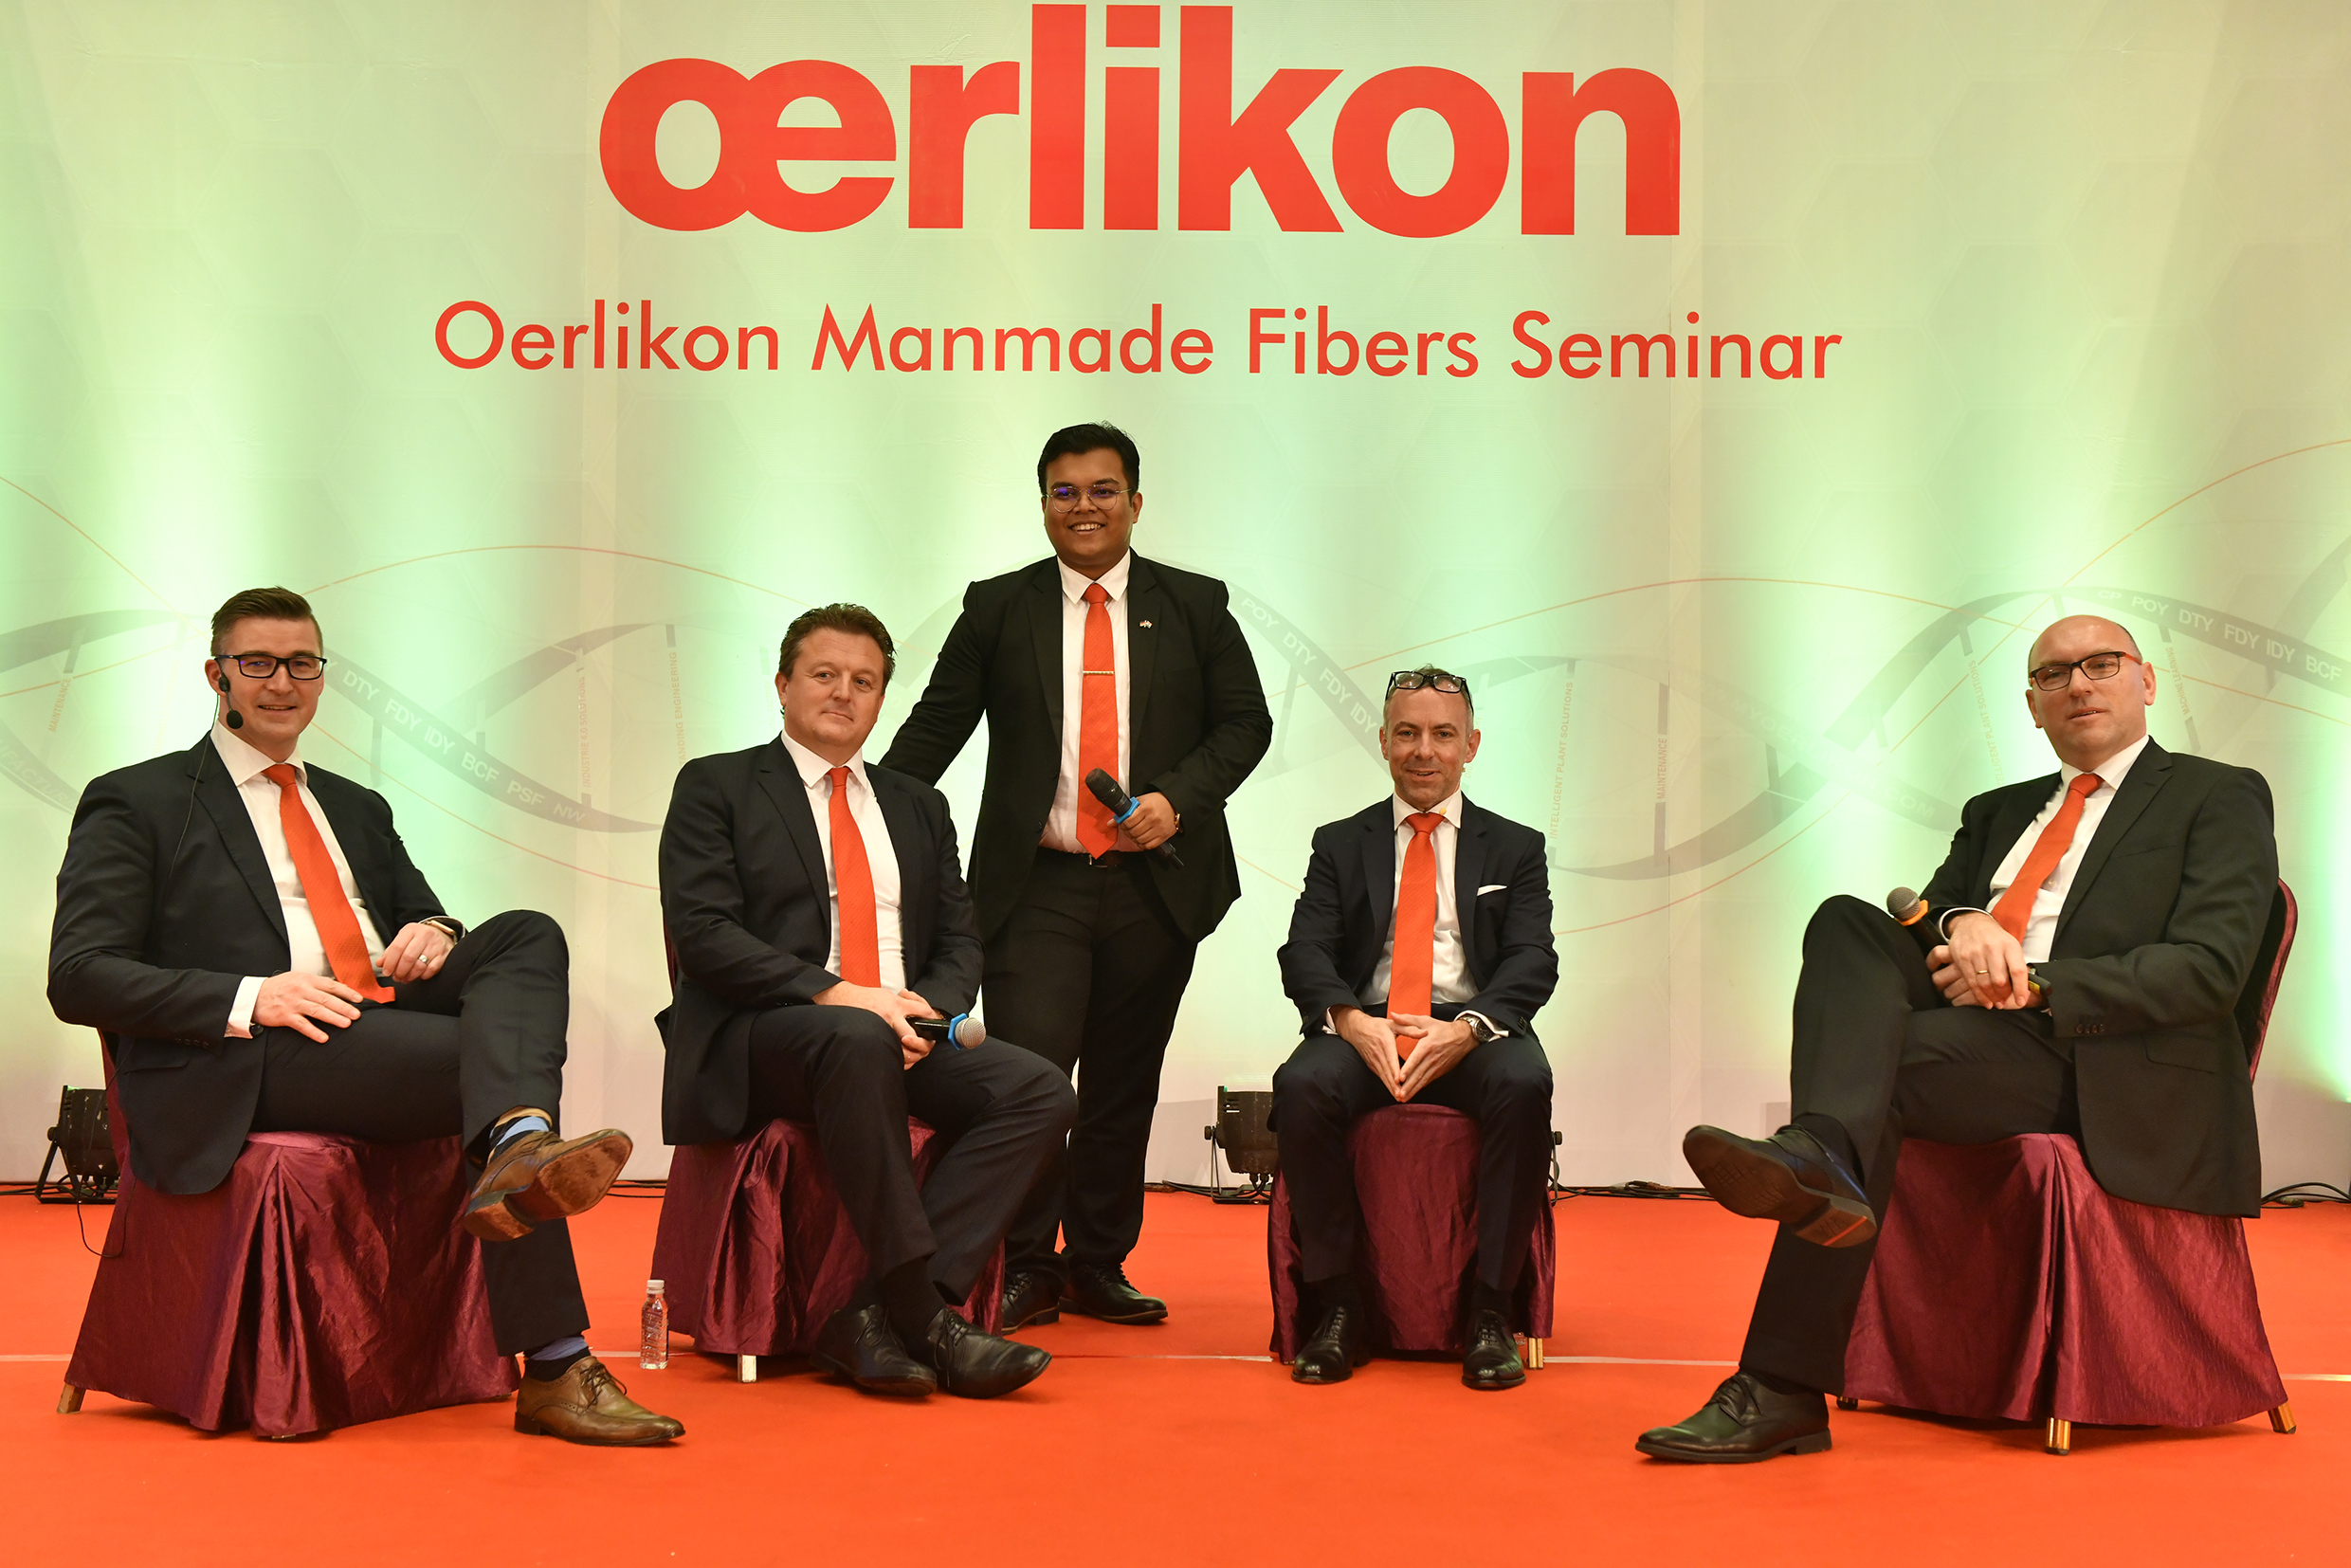 Michael Roellke, Volker Schmid, Jochen Adler and André Wissenberg (from left to right) at the podium discussion together with Sudipto Mandal from the Indian subsidiary.